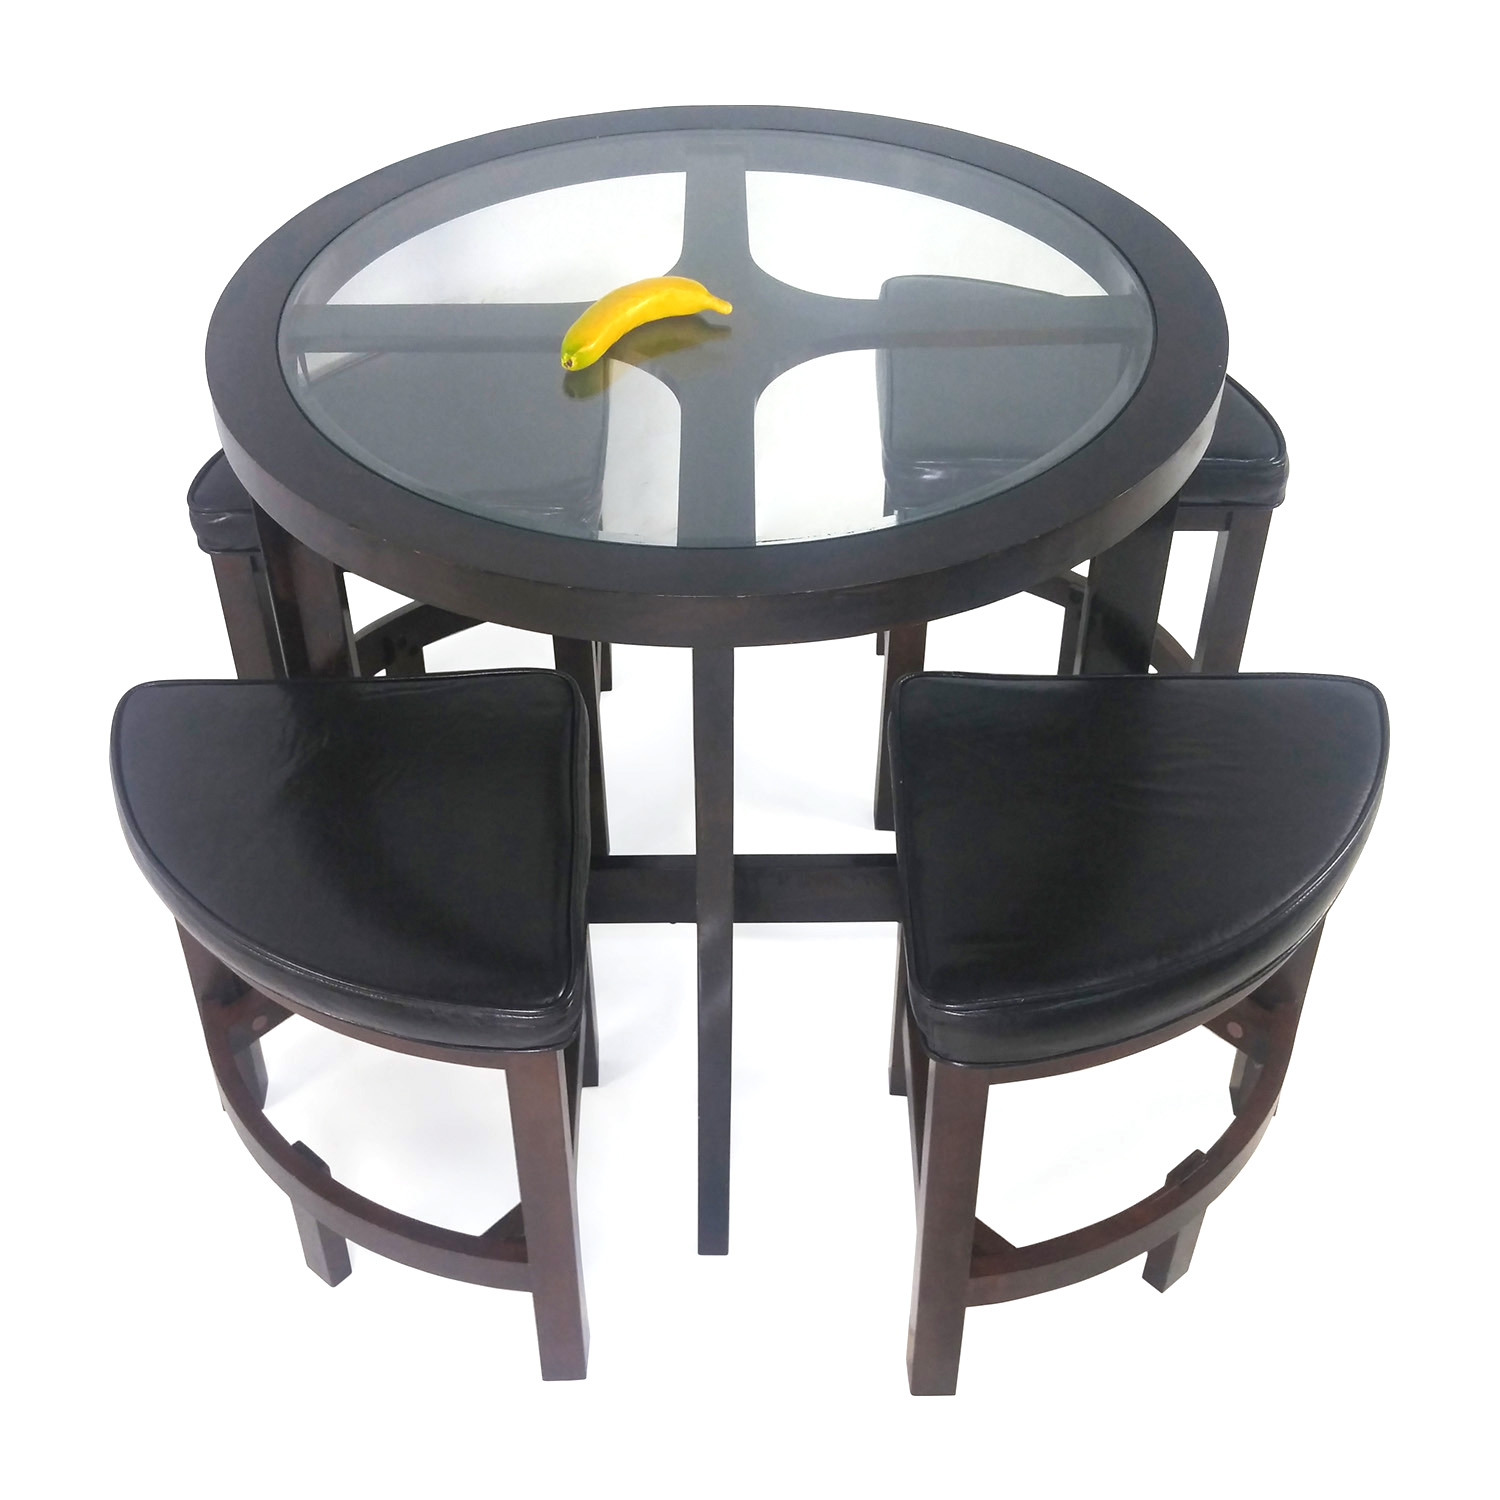 Dinette Chairs For Sale: Amazon Circular Dinette With 4 Chairs / Tables